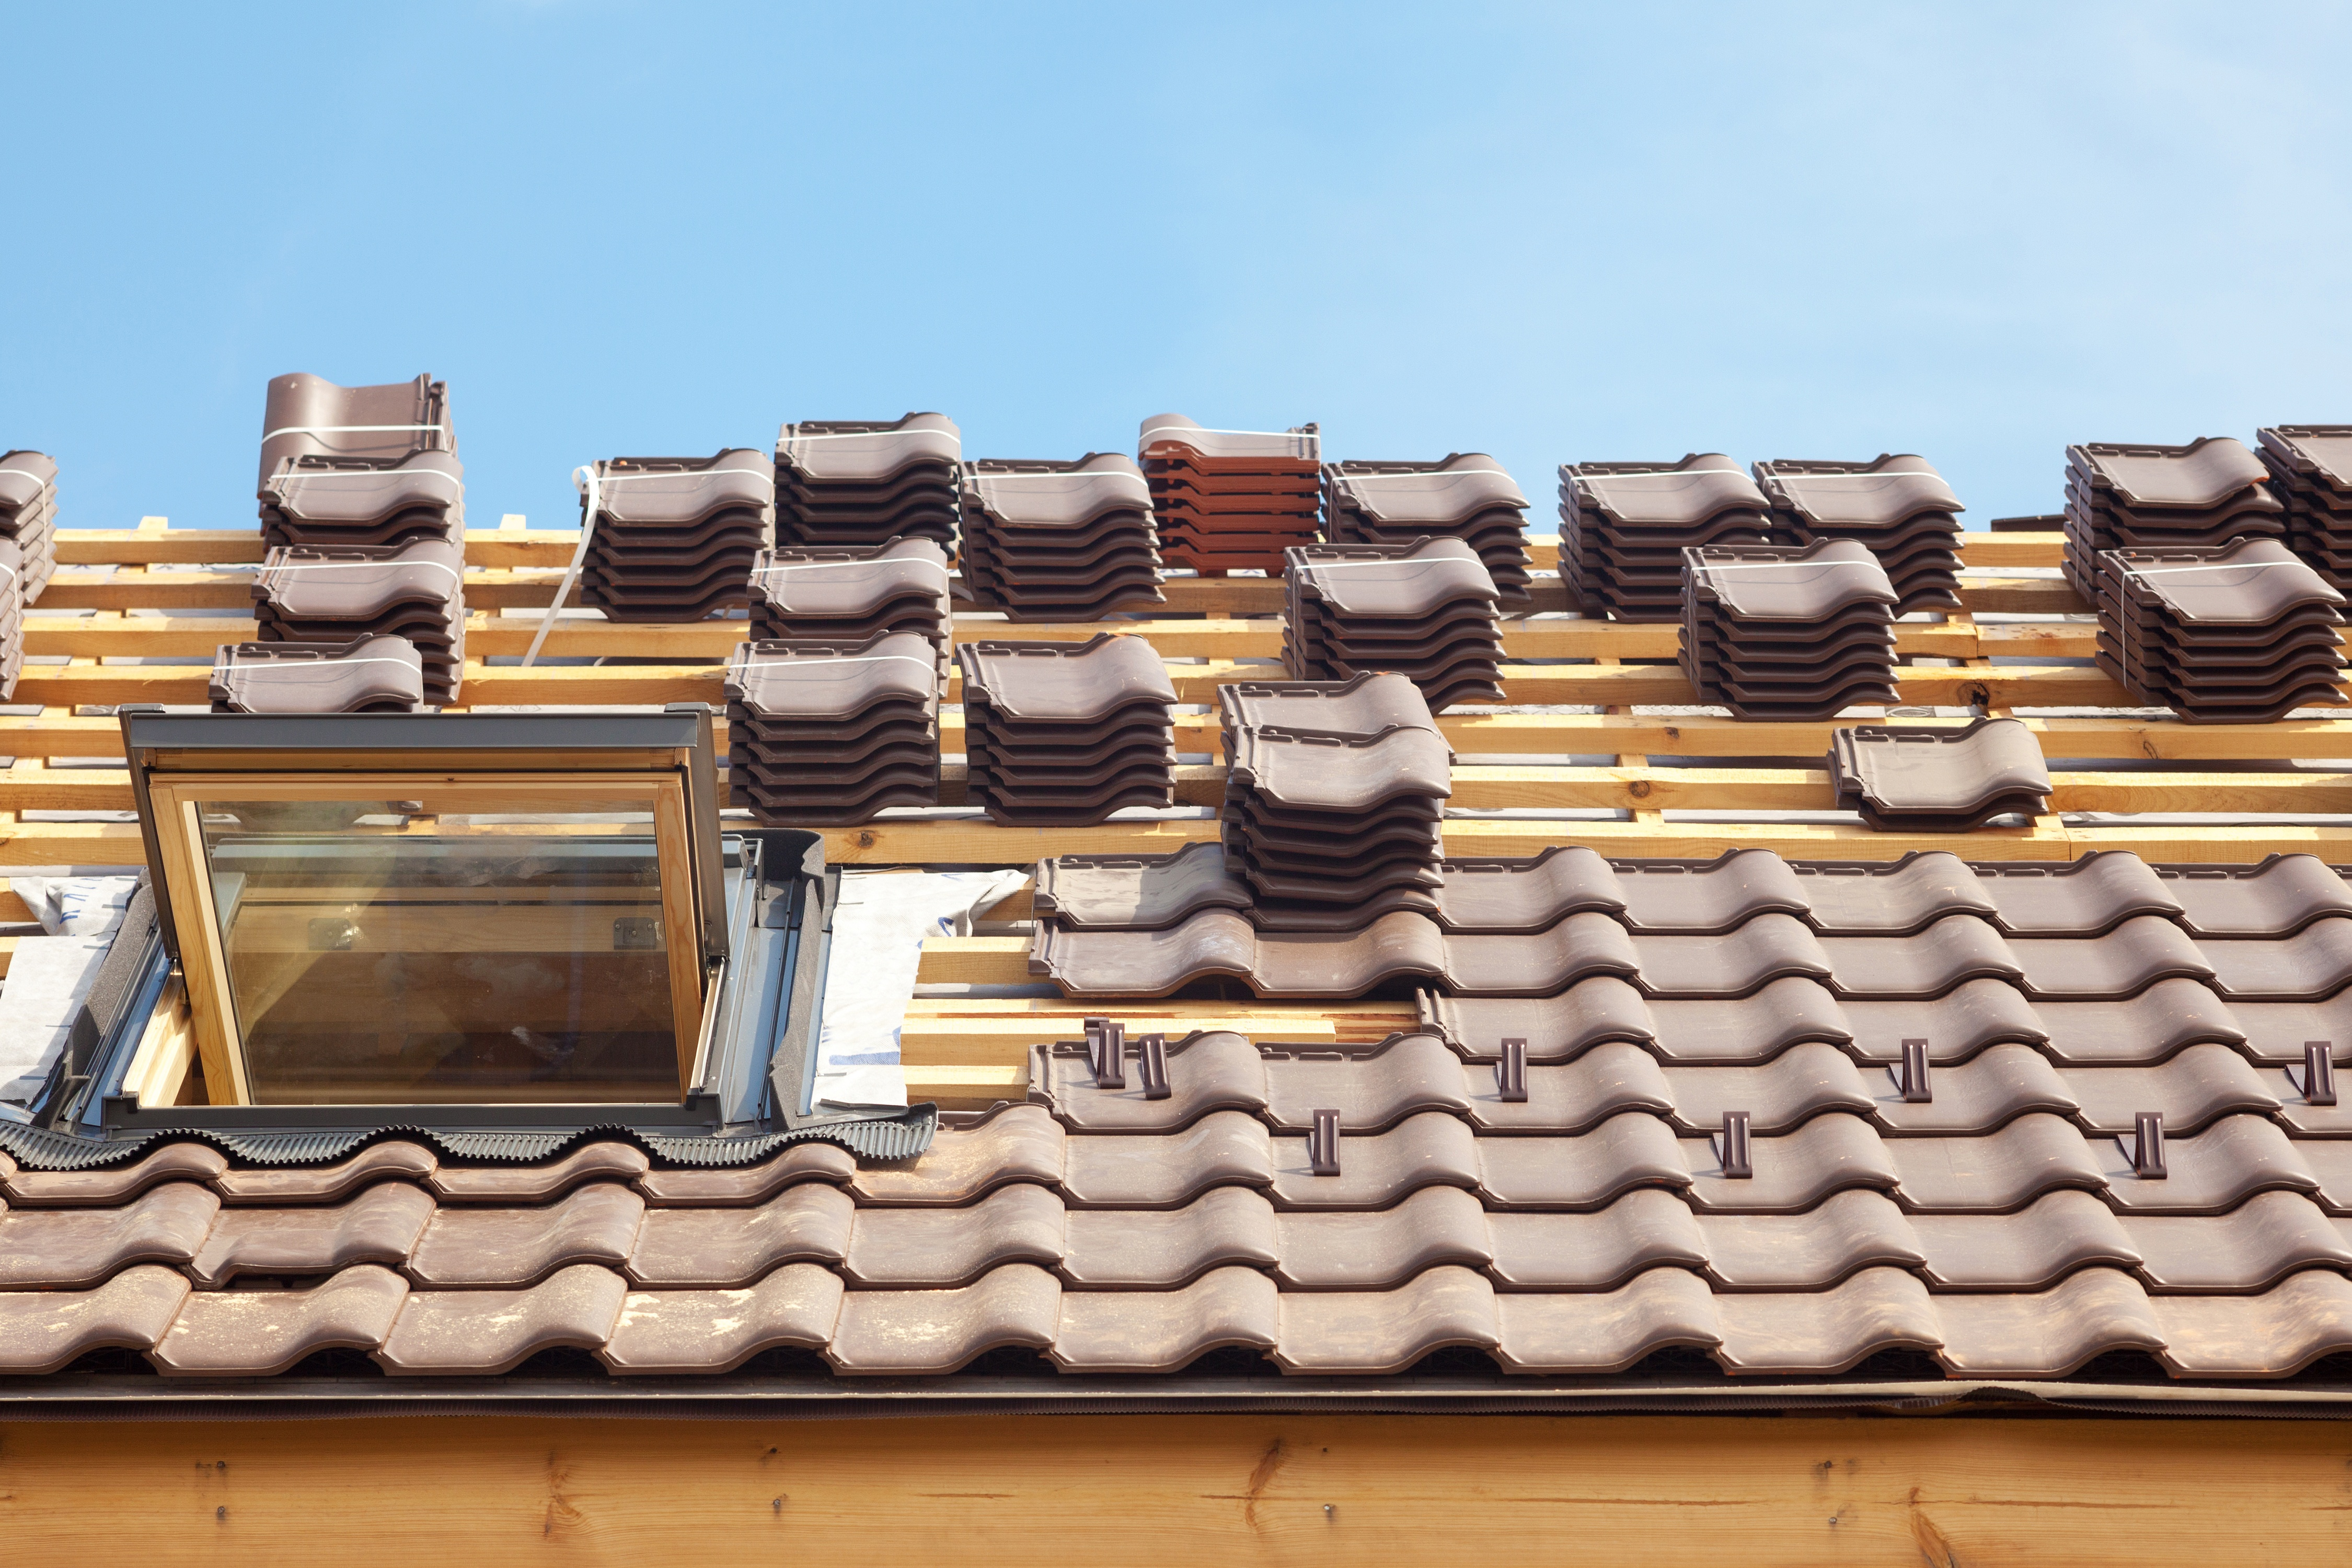 Commercial Steep Slope Roof